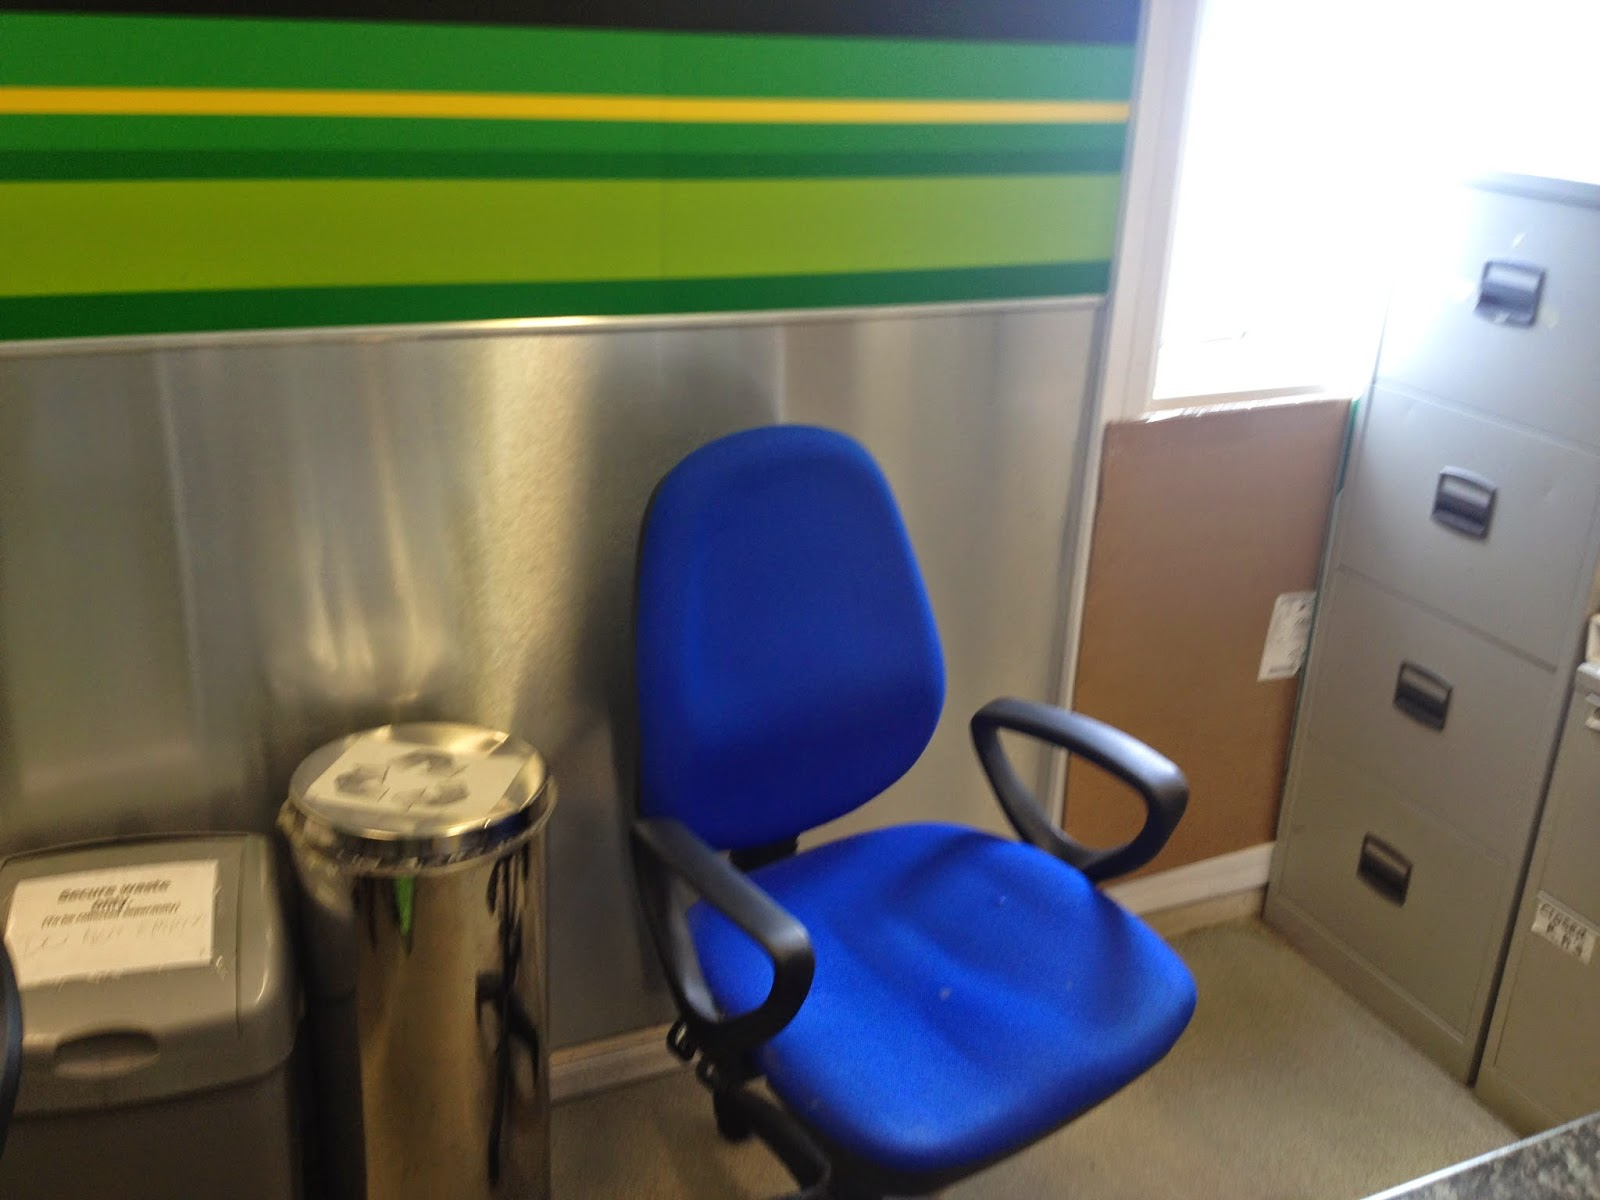 Bournemouth Airport Europcar Desk, closed on a Monday mid-day